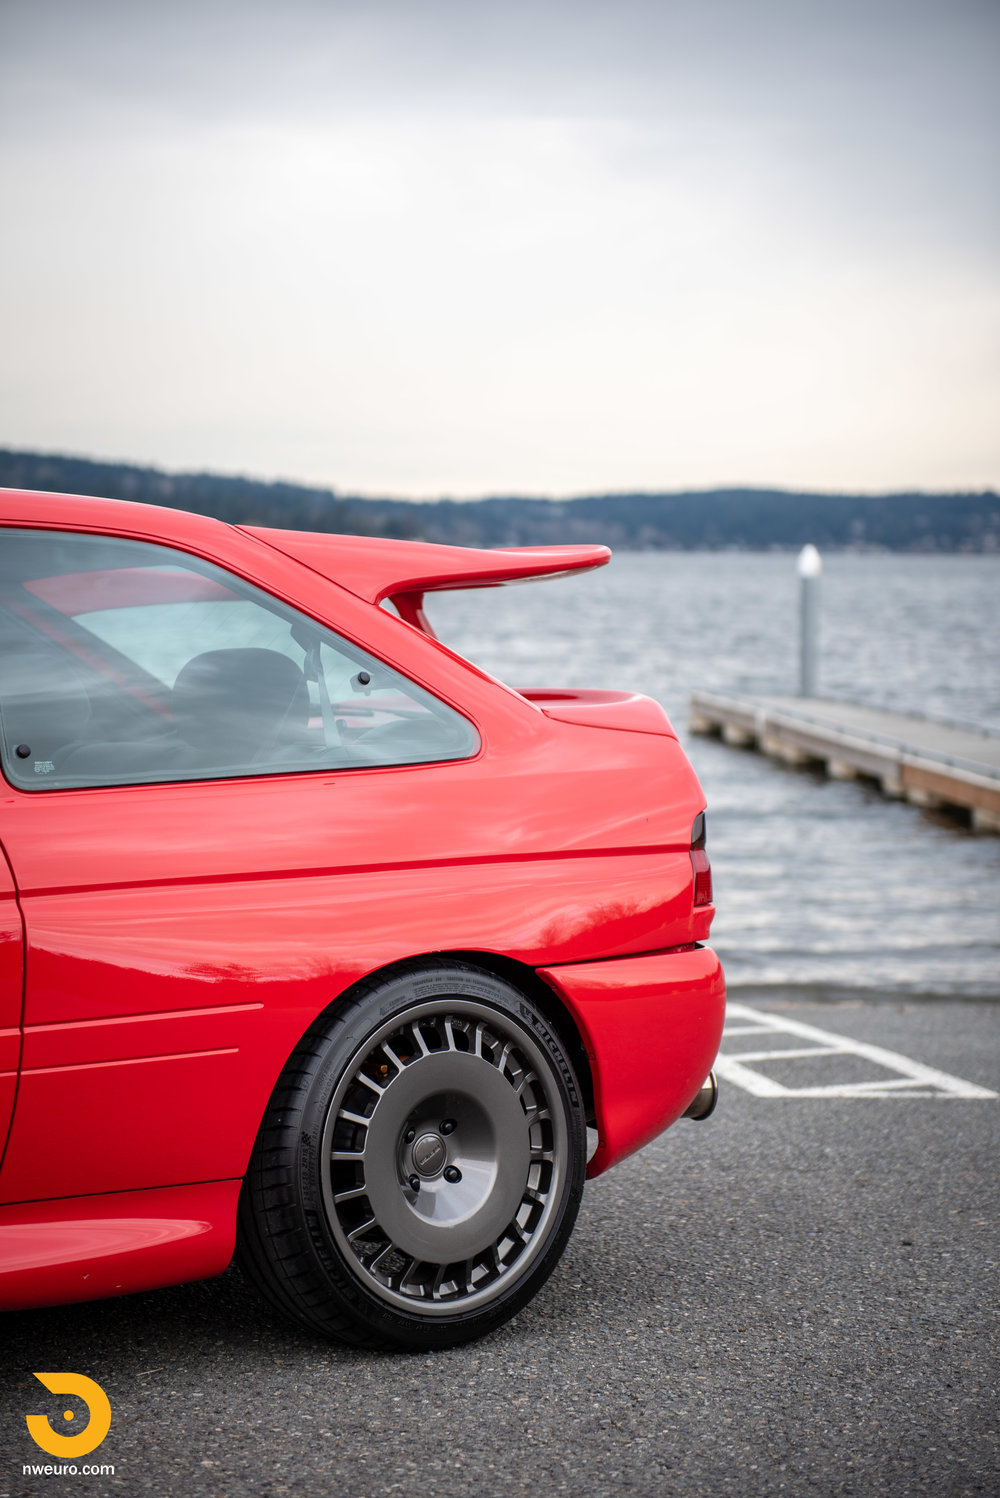 1993 Ford Escort Cosworth RS Red-14.jpg